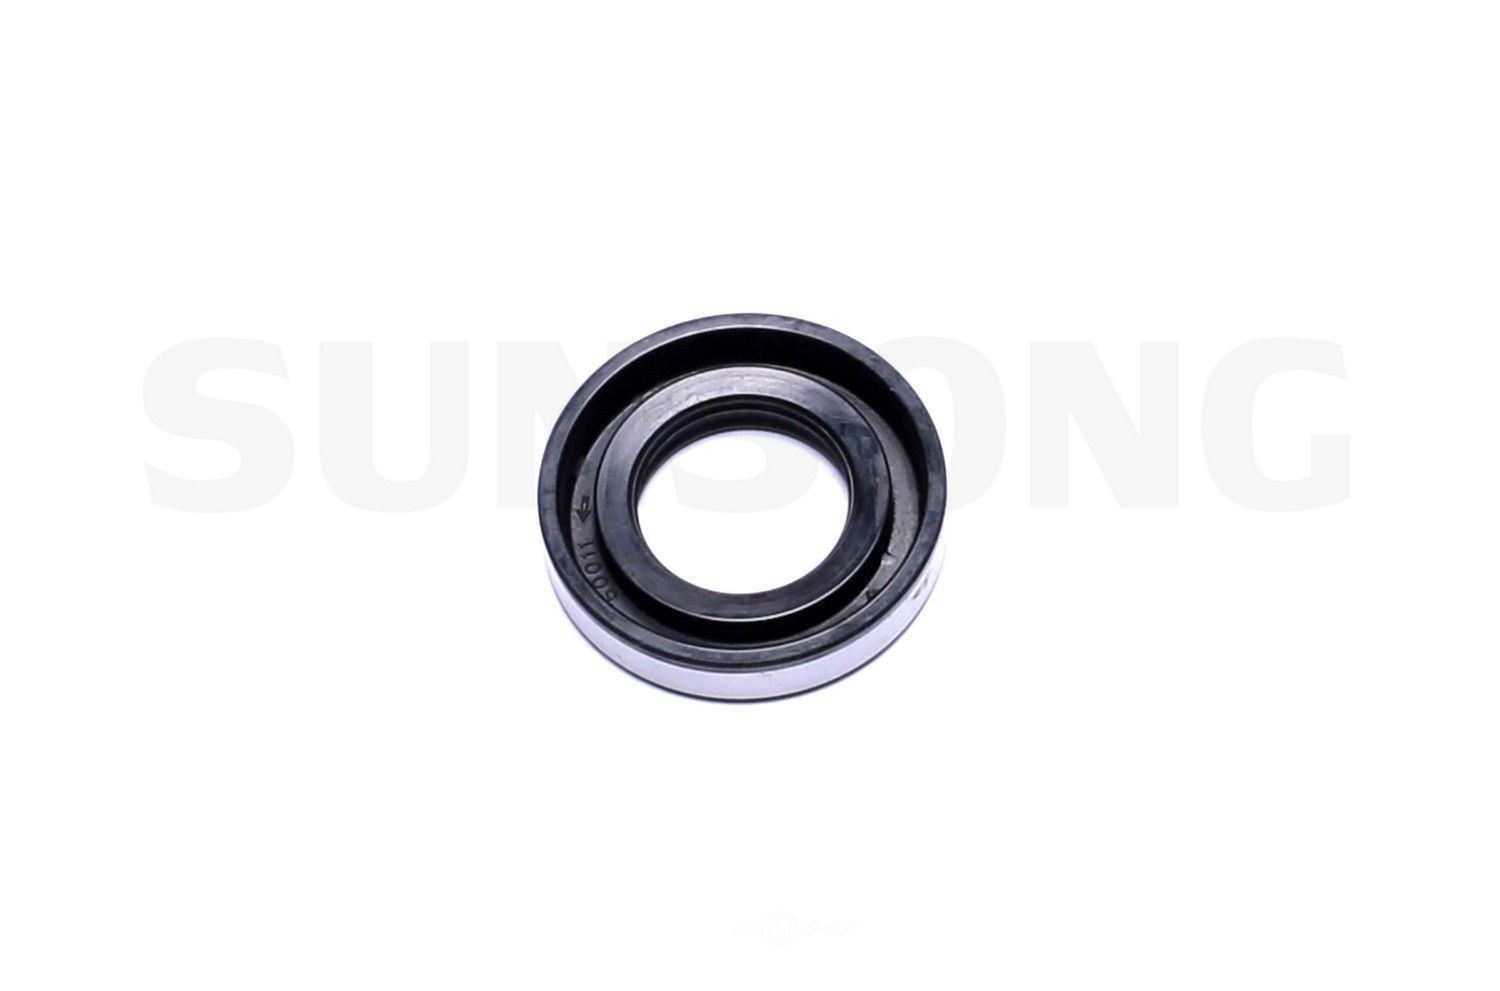 SUNSONG NORTH AMERICA - Power Steering Pump Drive Shaft Seal Kit - SUG 8401457